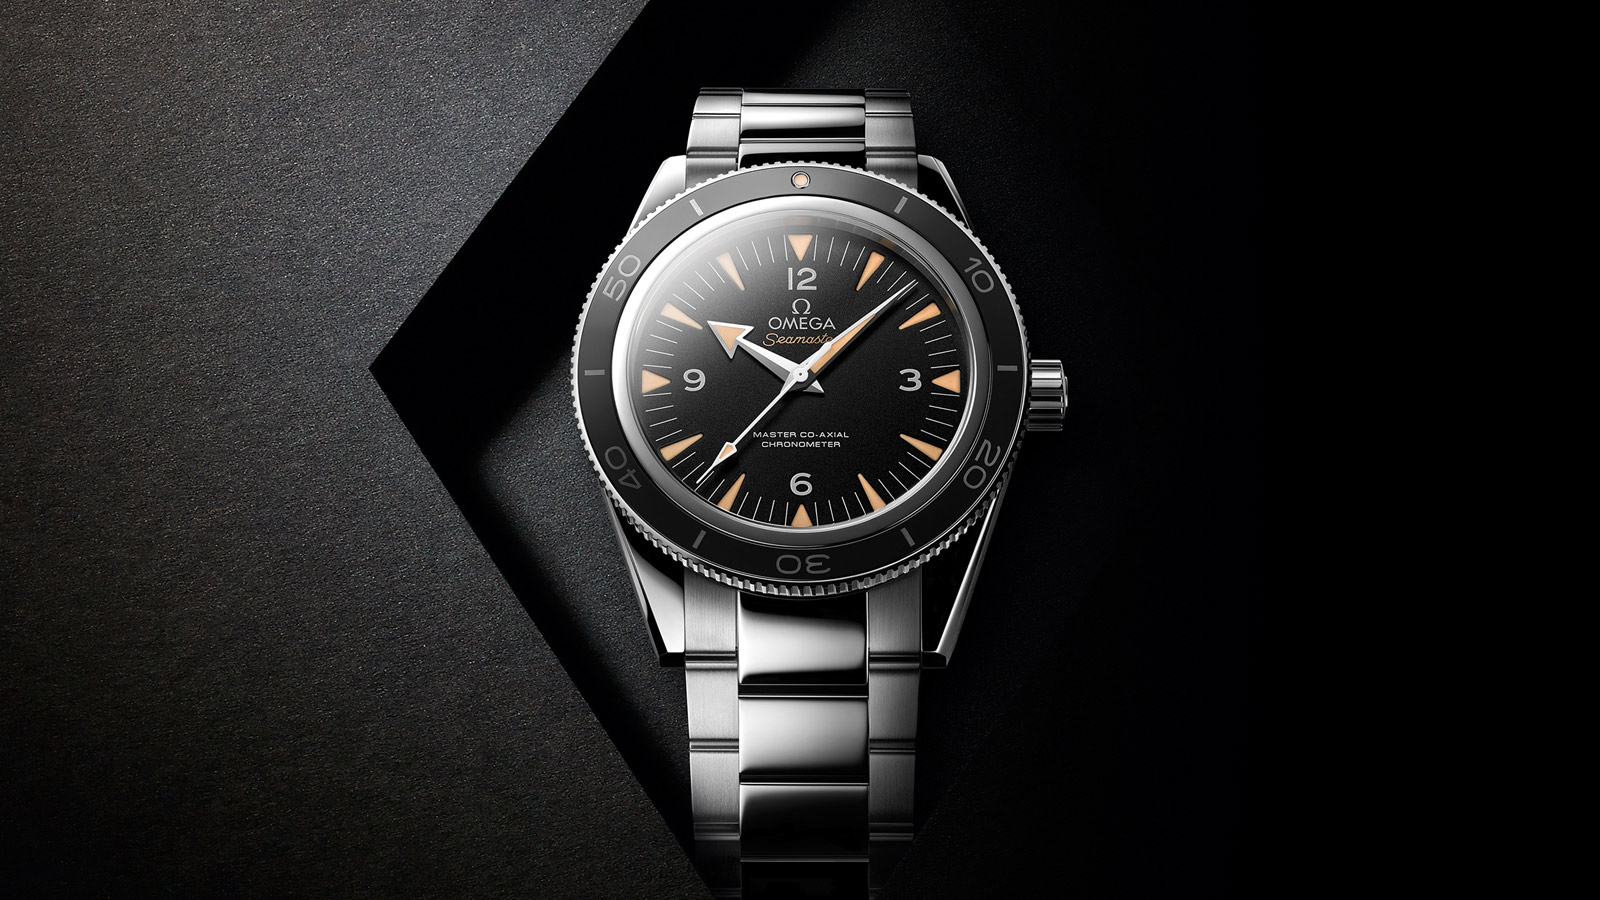 The accuracy has been guaranteed by the precise and reliable Omega Master Co-Axial movement.